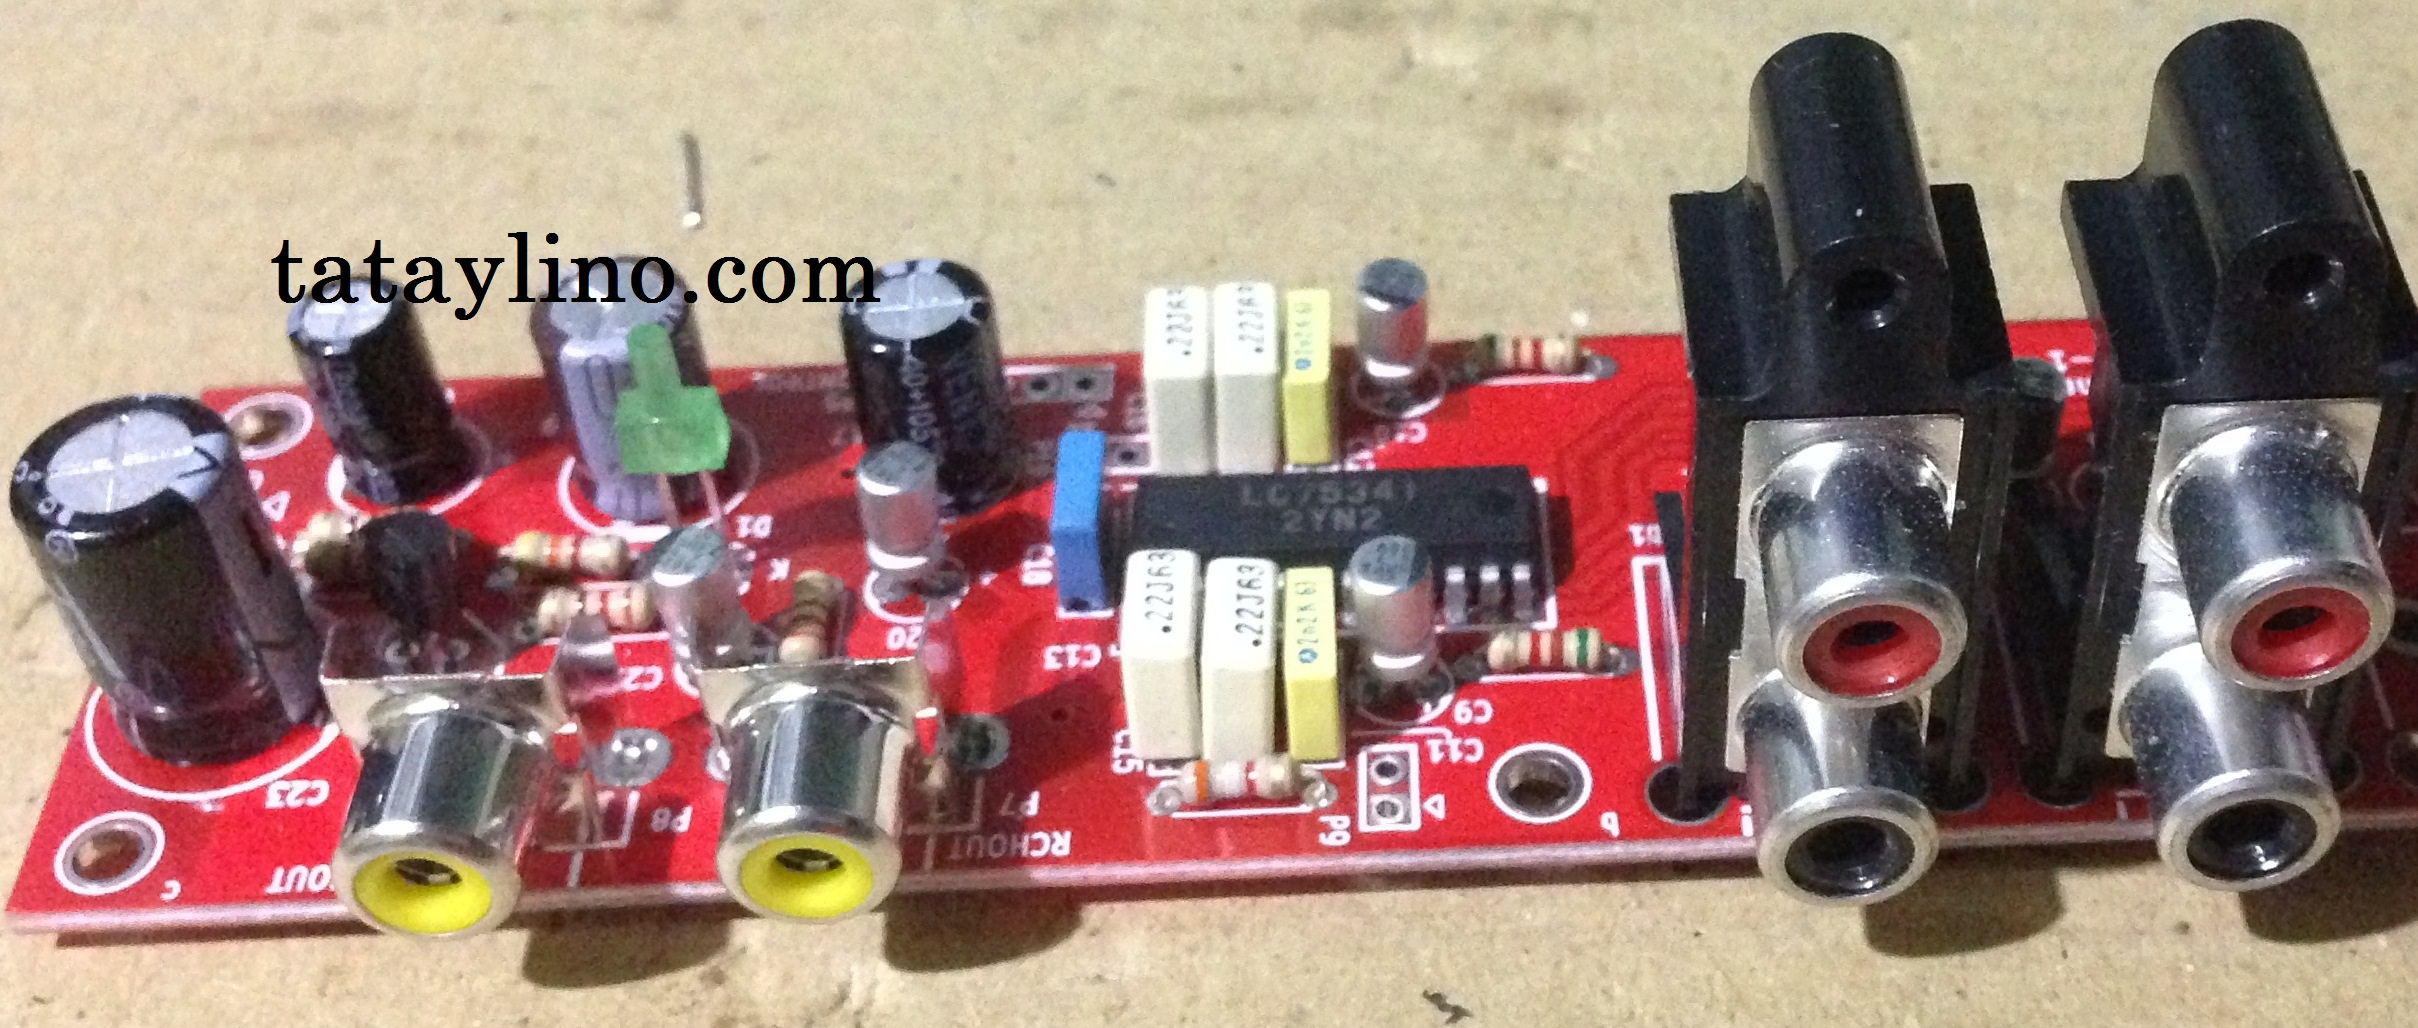 Lc75341 Tone Control Using Arduino Digital Volume Circuit You Can Parameters Such As Bass Treble And Gain Through Its Serial Data Transfer